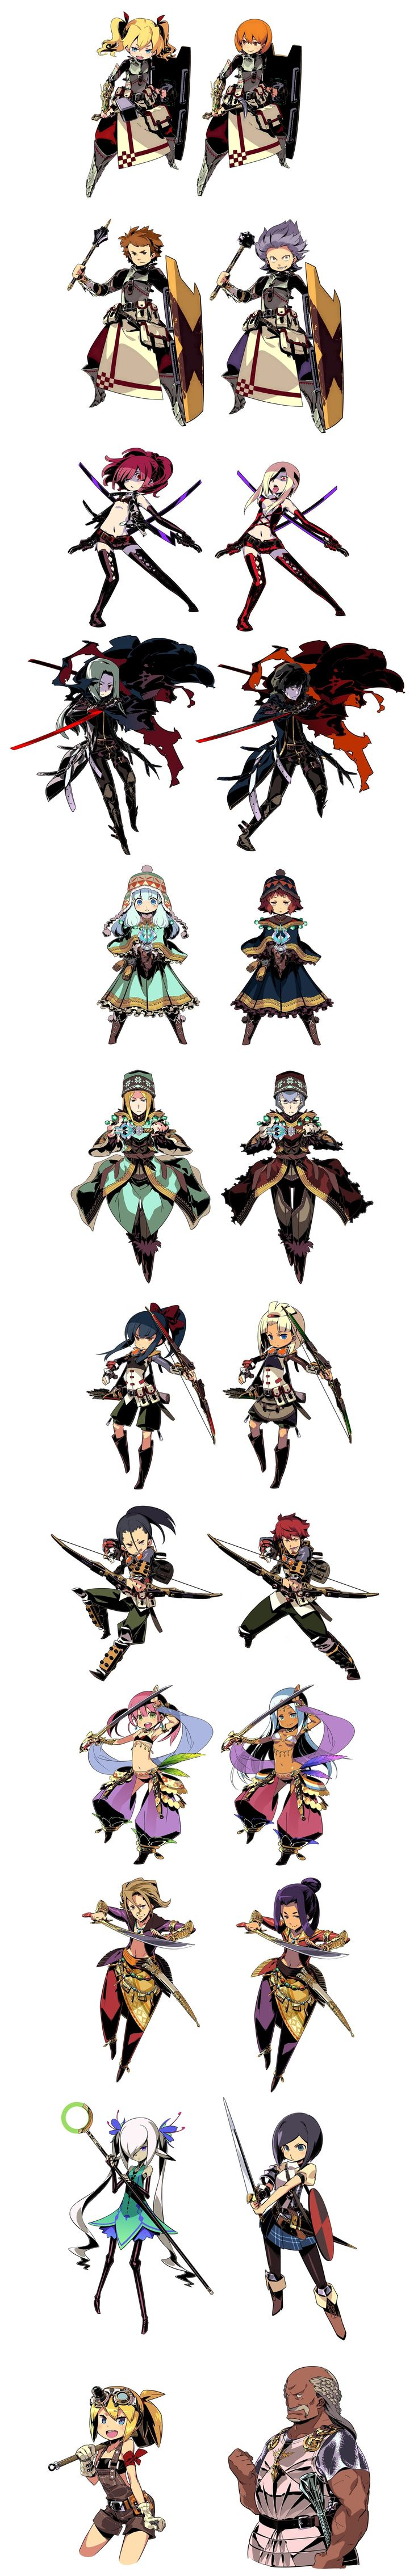 Etrian Odyssey IV portraits. These are all the clean pictures I could find...  they are good for reference in drawing your own characters :)